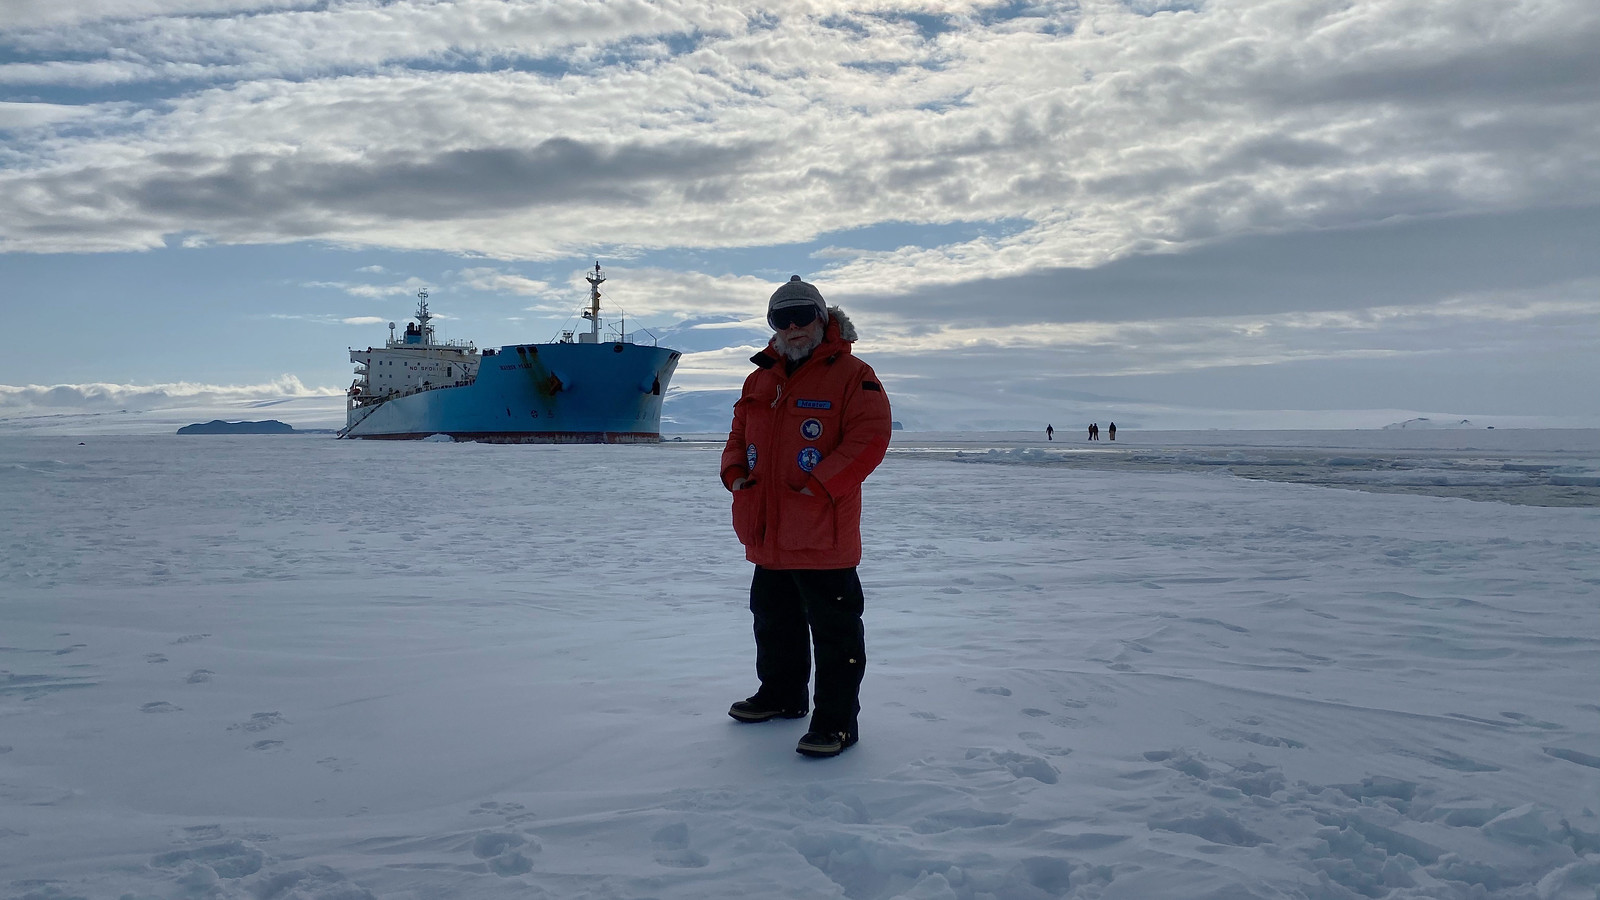 Capt. E.M. Hatton, civilian master of MT Maersk Peary, stands on an patch of Antarctic ice with his ship in the background, Feb. 13. (U.S. Navy)